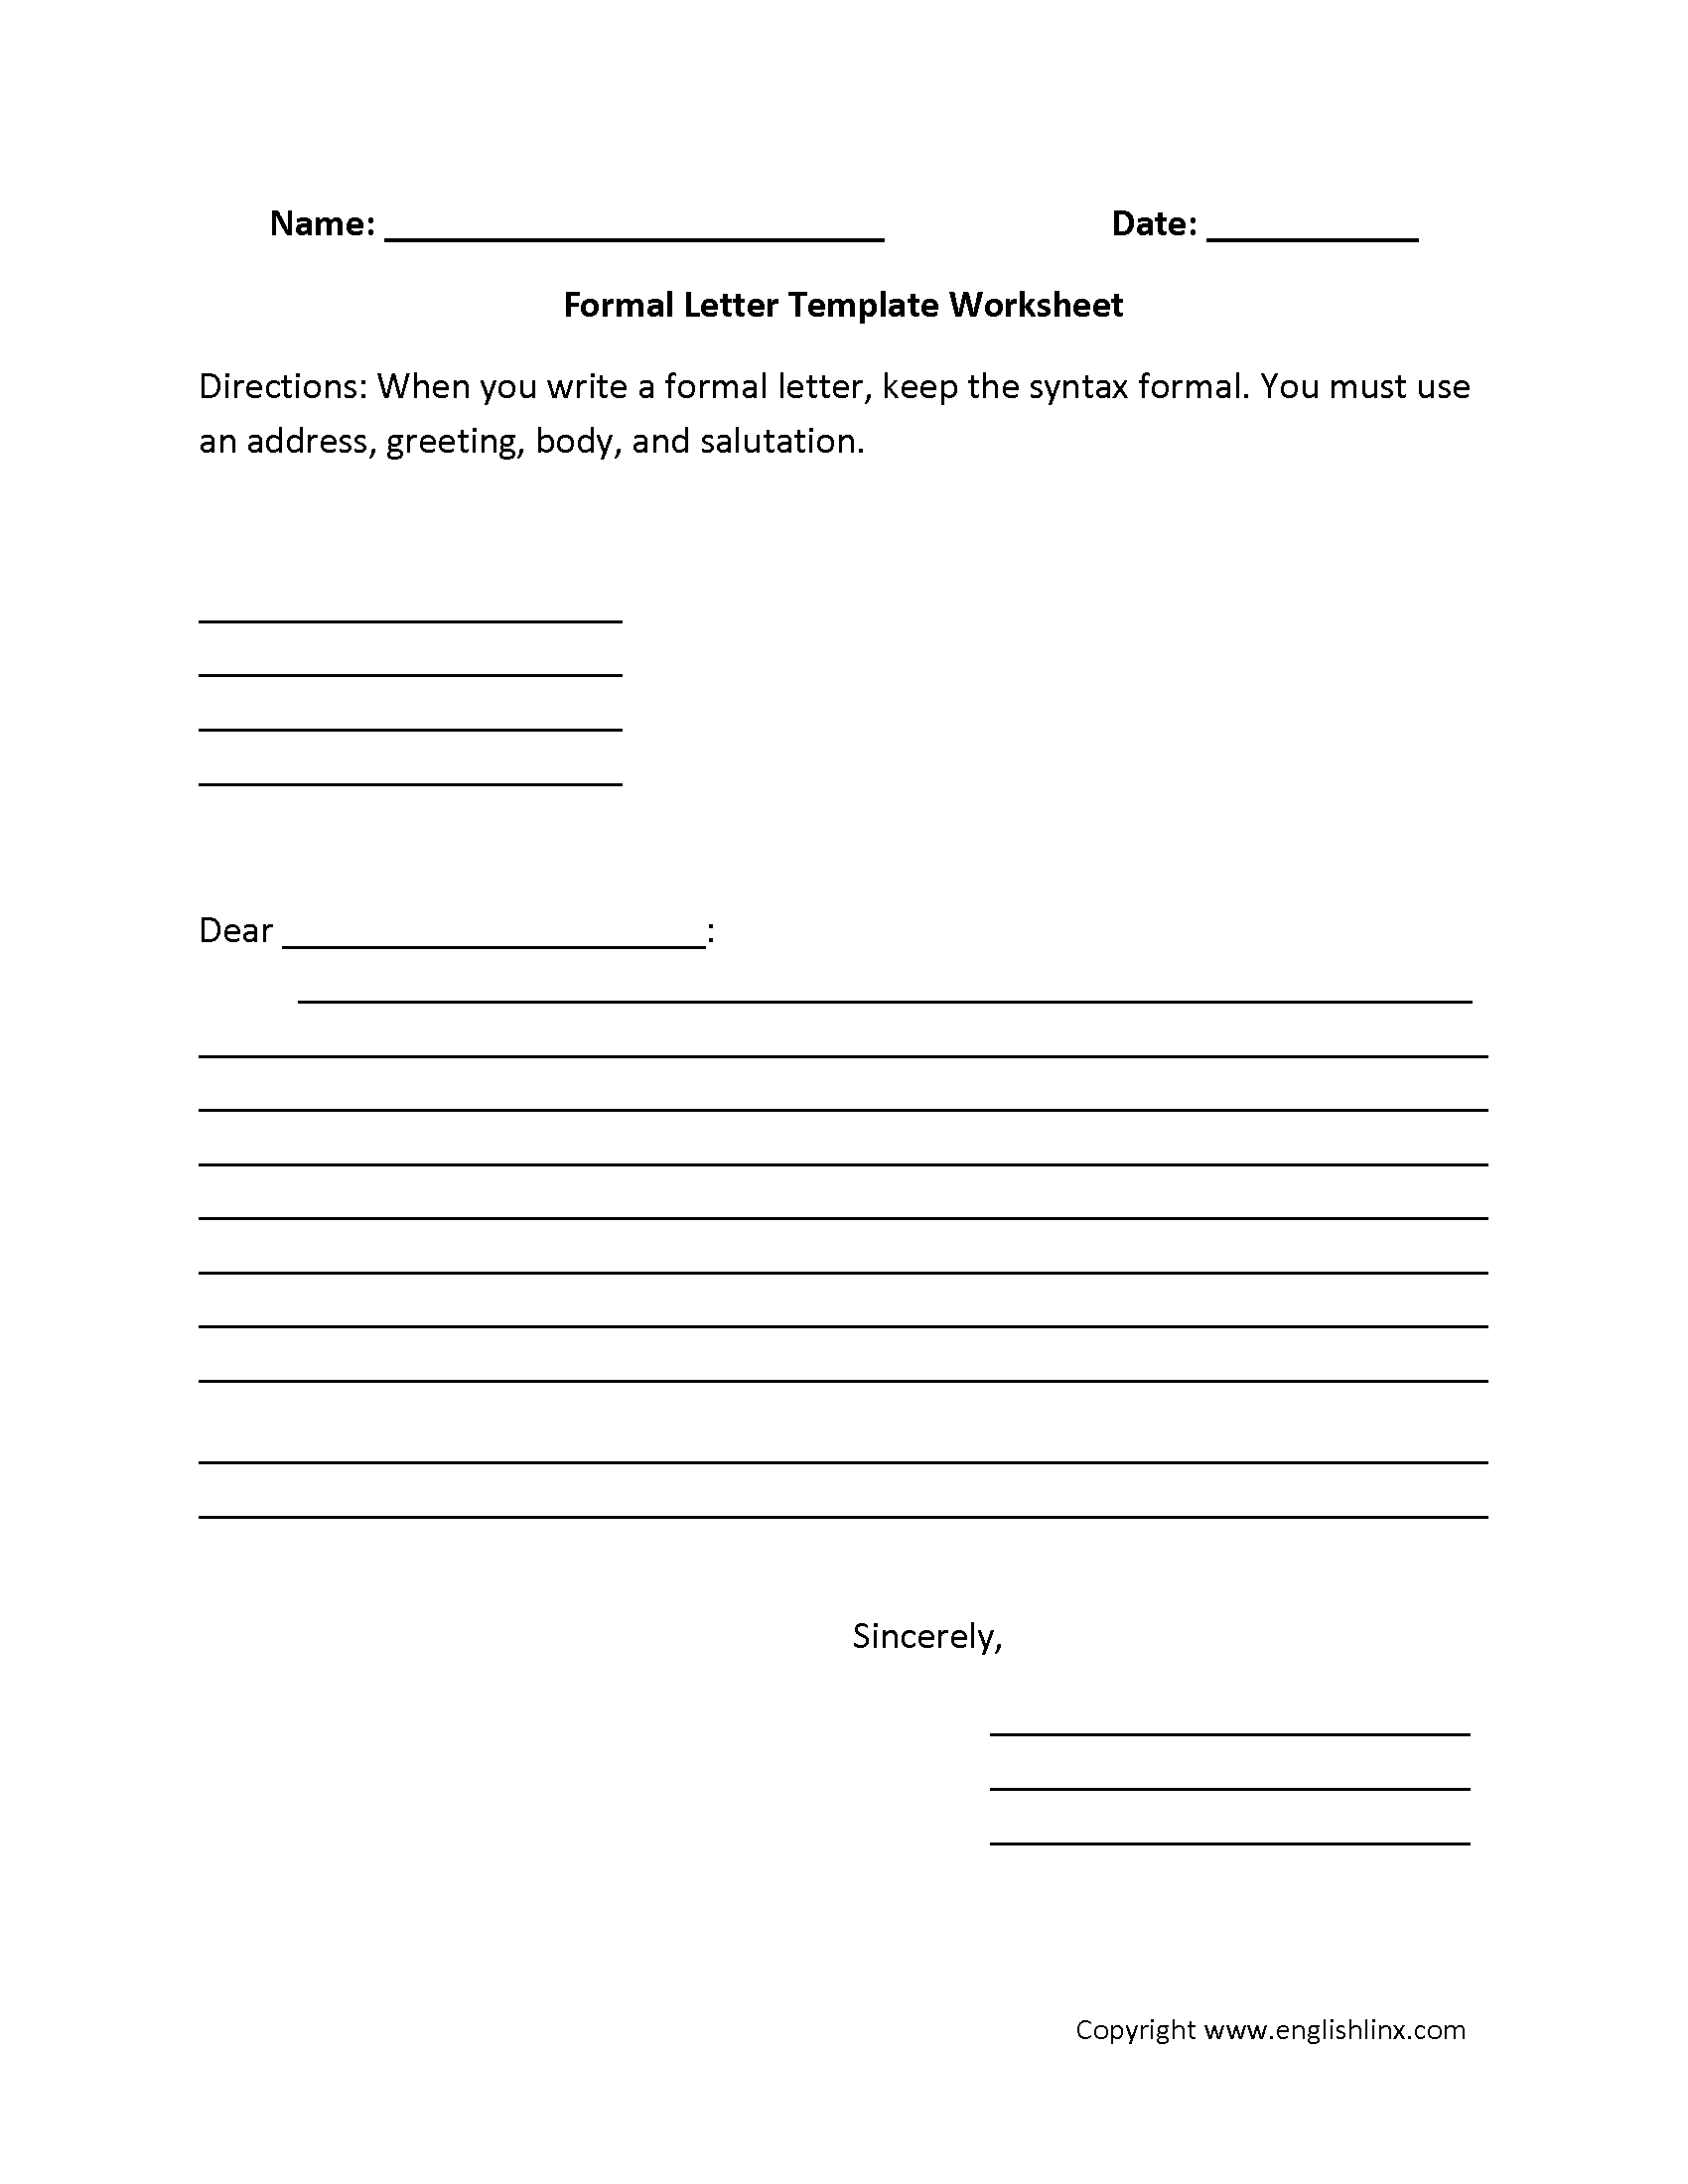 Letter writing worksheets formal letter writing worksheets formal letter writing worksheets spiritdancerdesigns Image collections